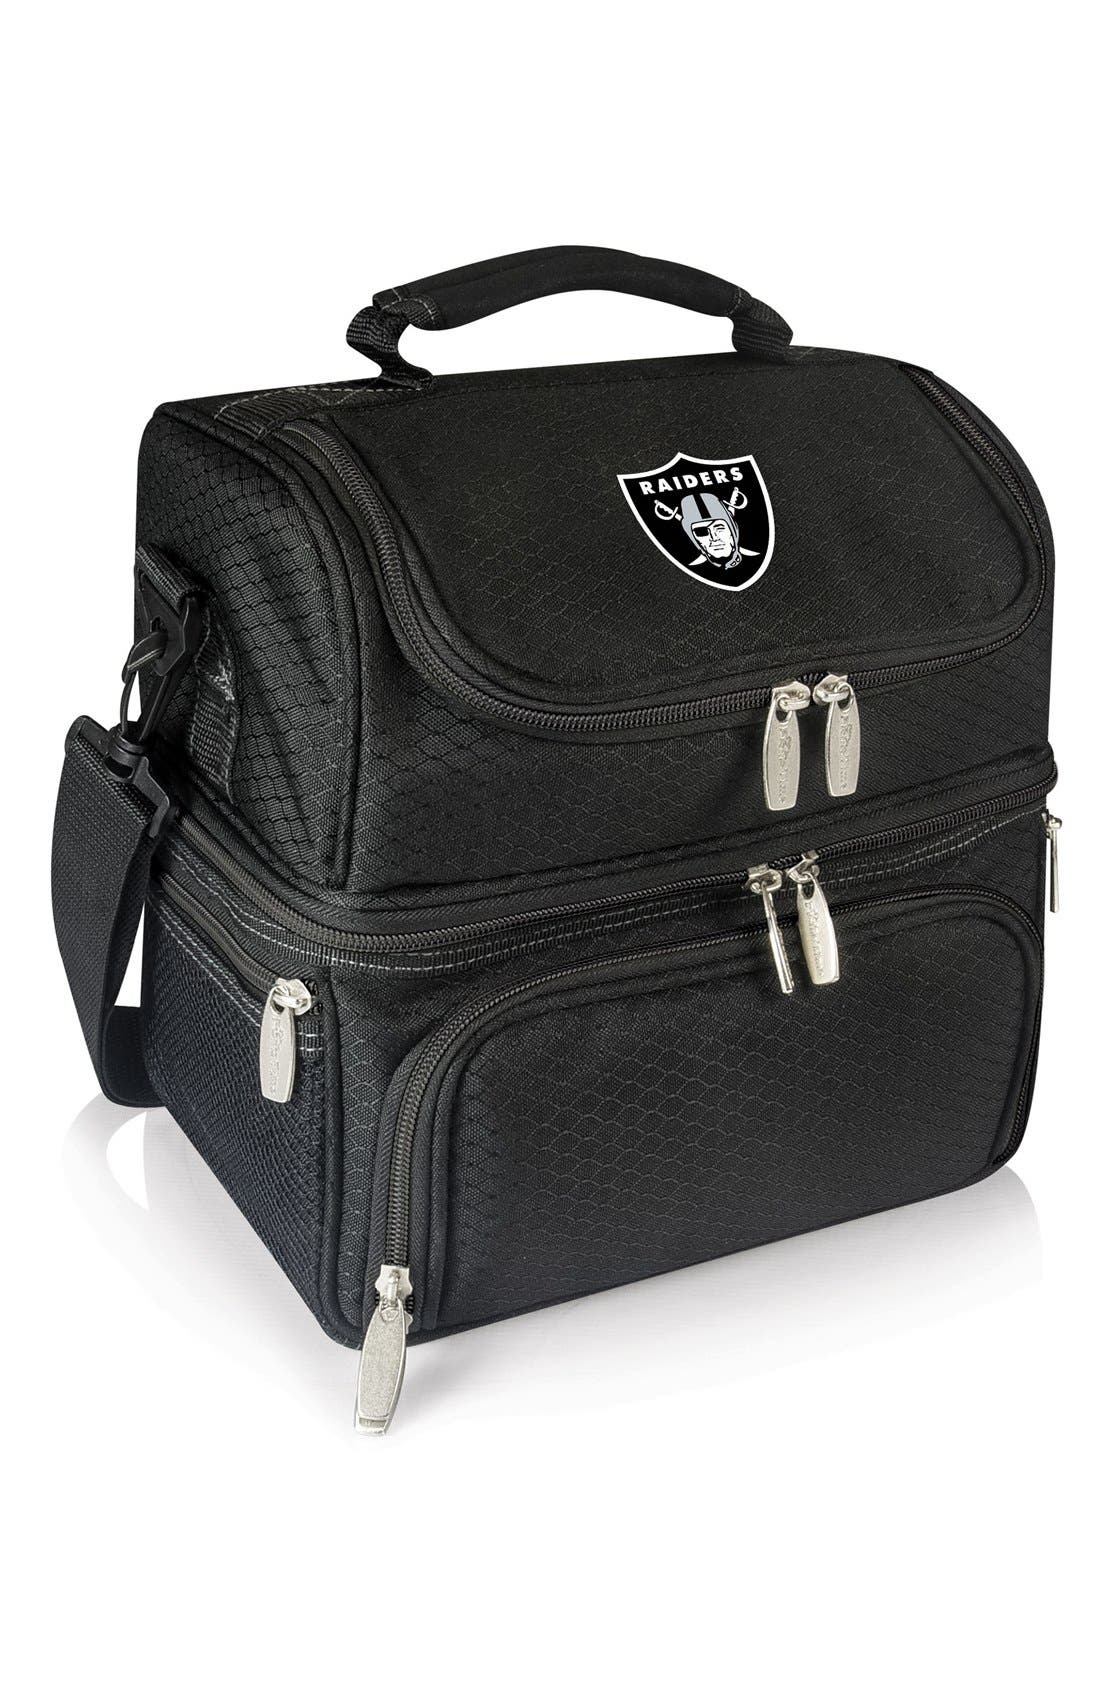 'Pranzo' NFL Insulated Lunch Box,                             Main thumbnail 1, color,                             Oakland Raiders/ Black